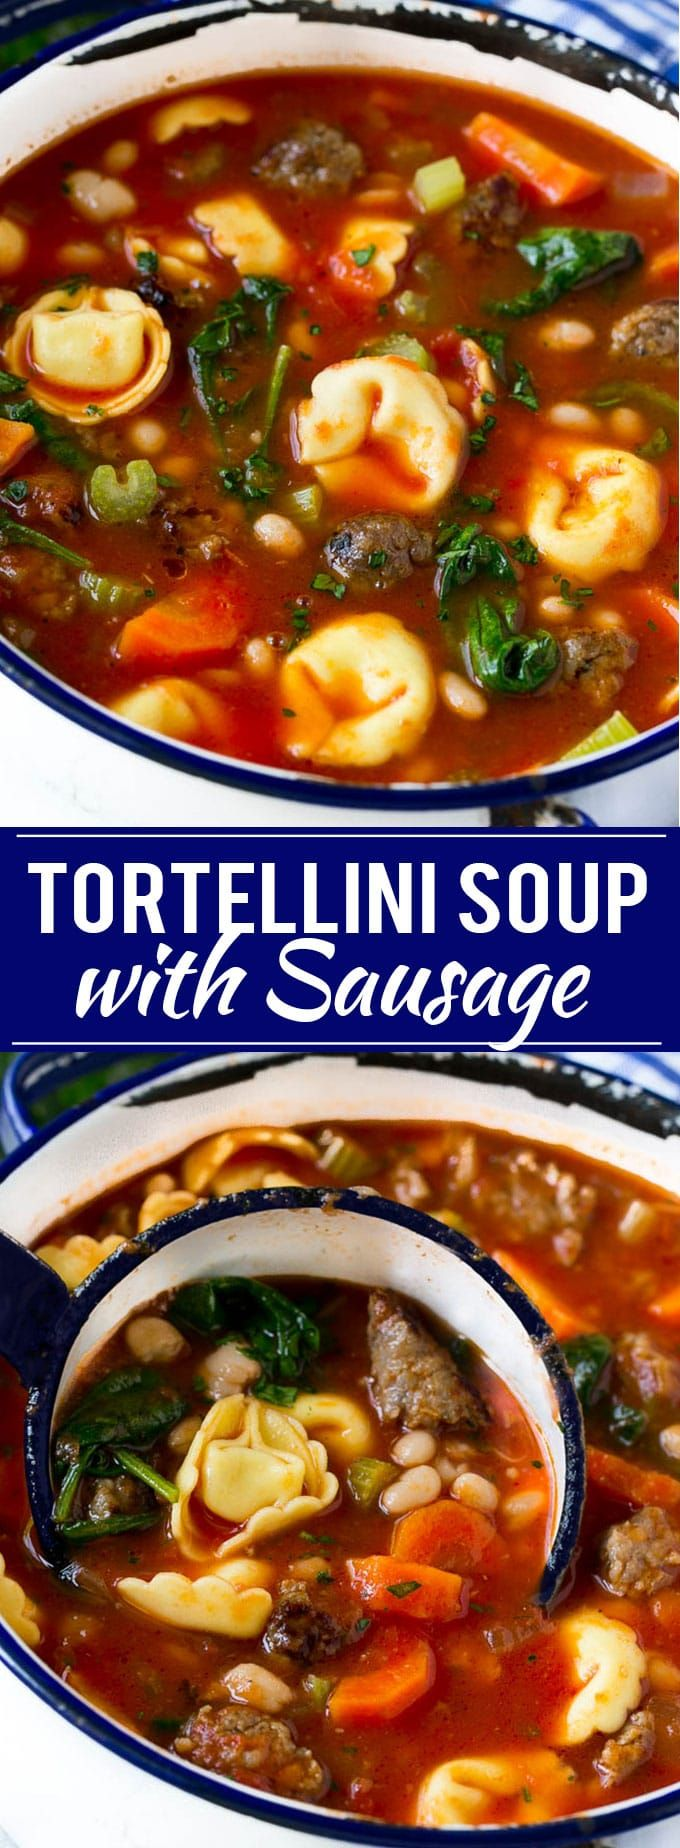 Tortellini Soup with Sausage Recipe | Tortellini Soup | Sausage Soup | Bean Soup | One Pot Meal